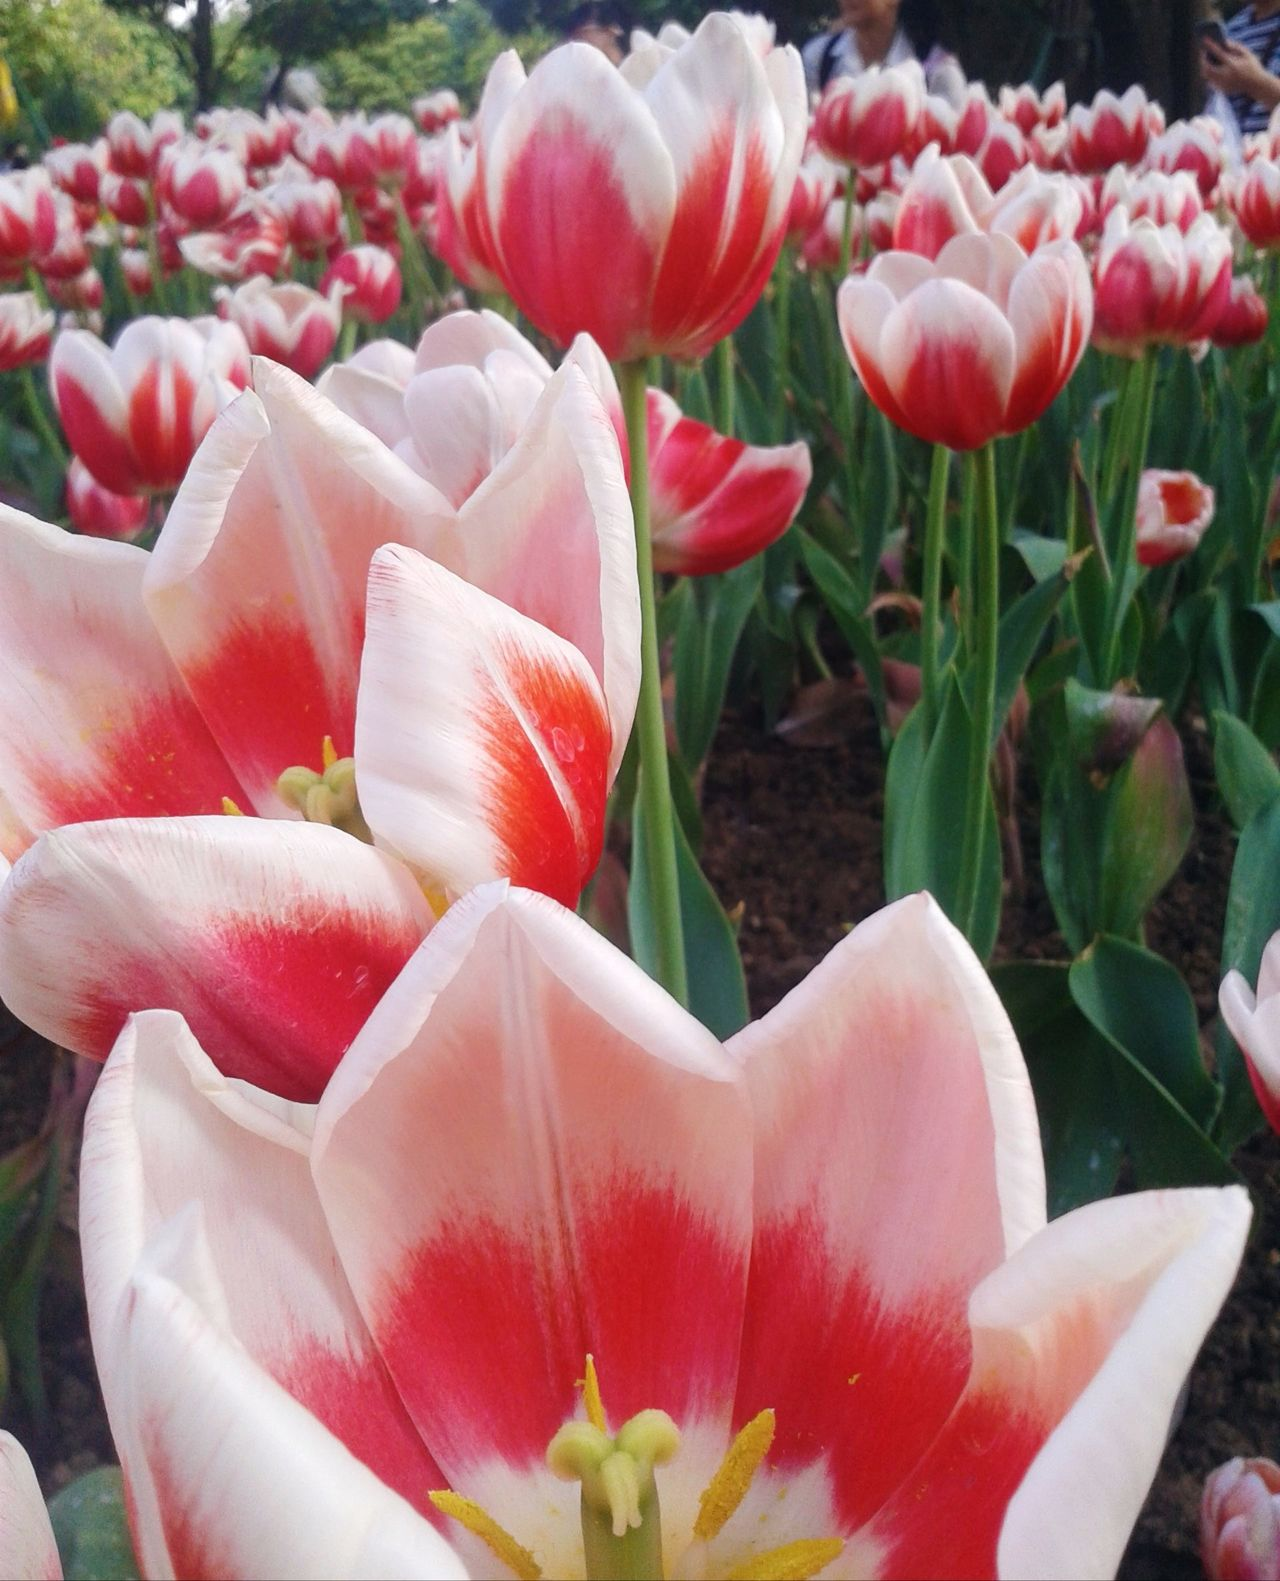 Flower Freshness Nature Petal Beauty In Nature Plant Fragility Flower Head Red Close-up Growth No People Tulip Pink Color Blossom Outdoors Flower Arrangement Day Bouquet